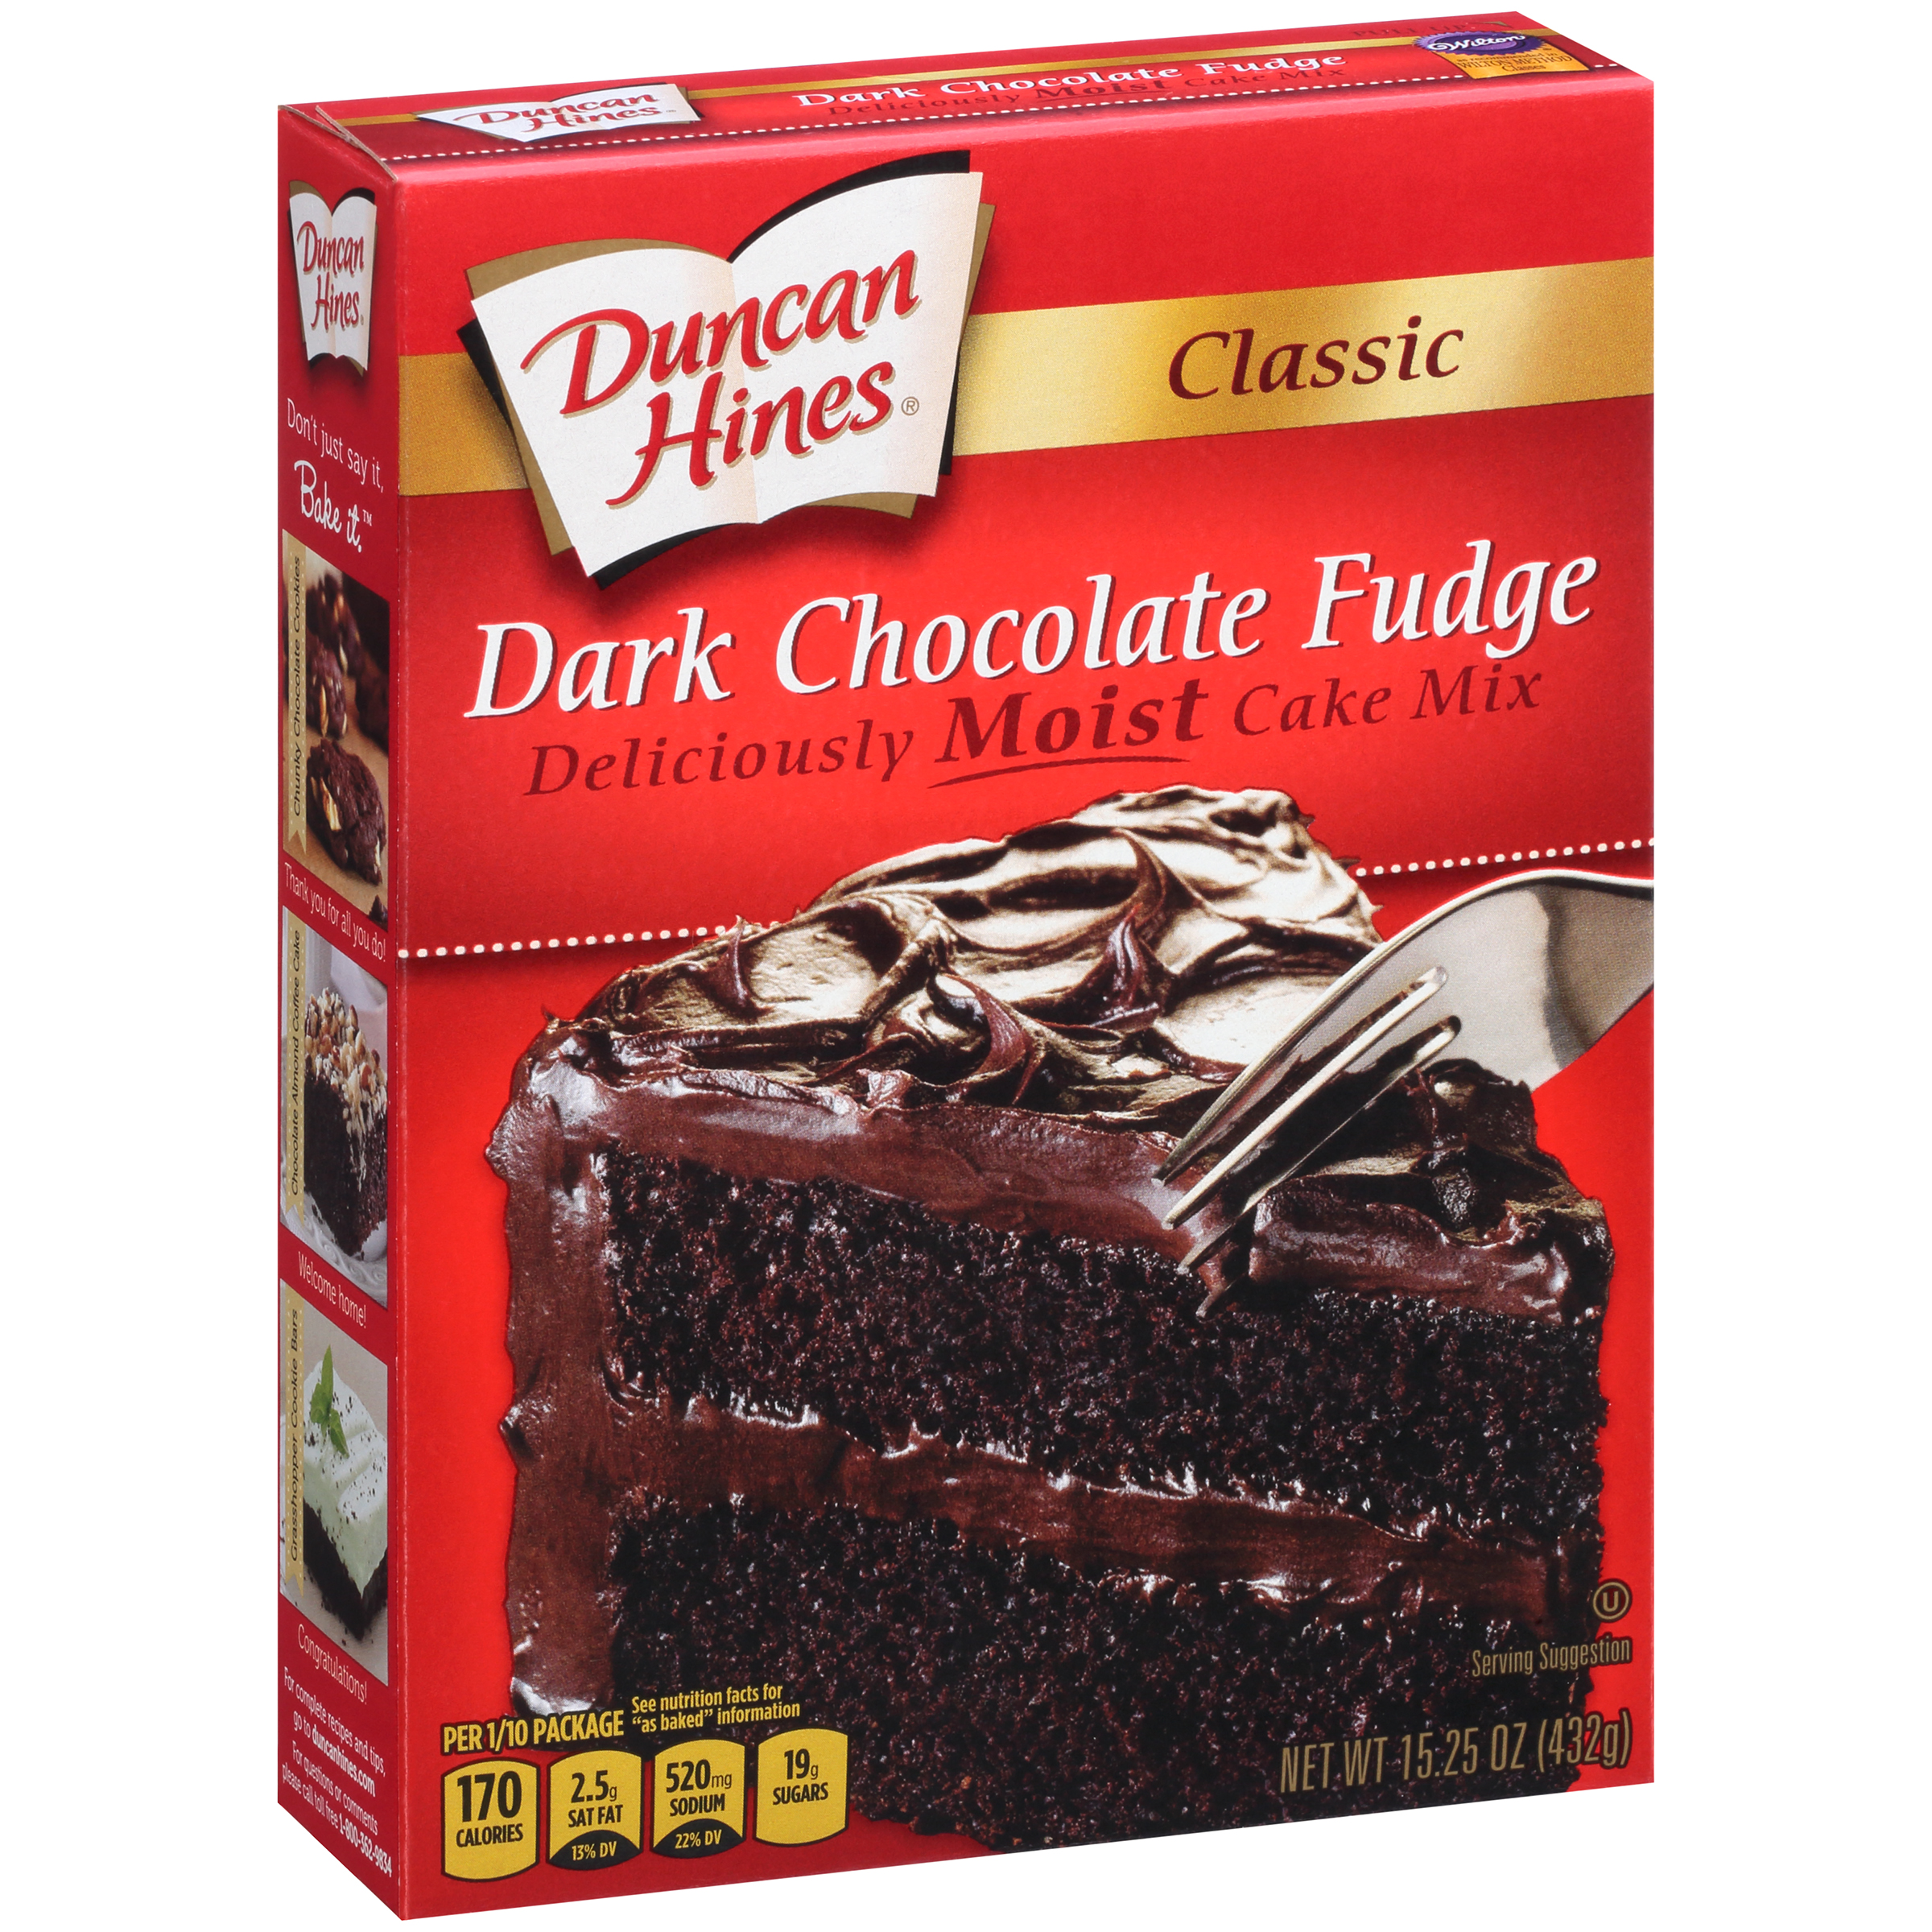 Duncan Hines Classic Dark Chocolate Fudge Cake Mix 1525